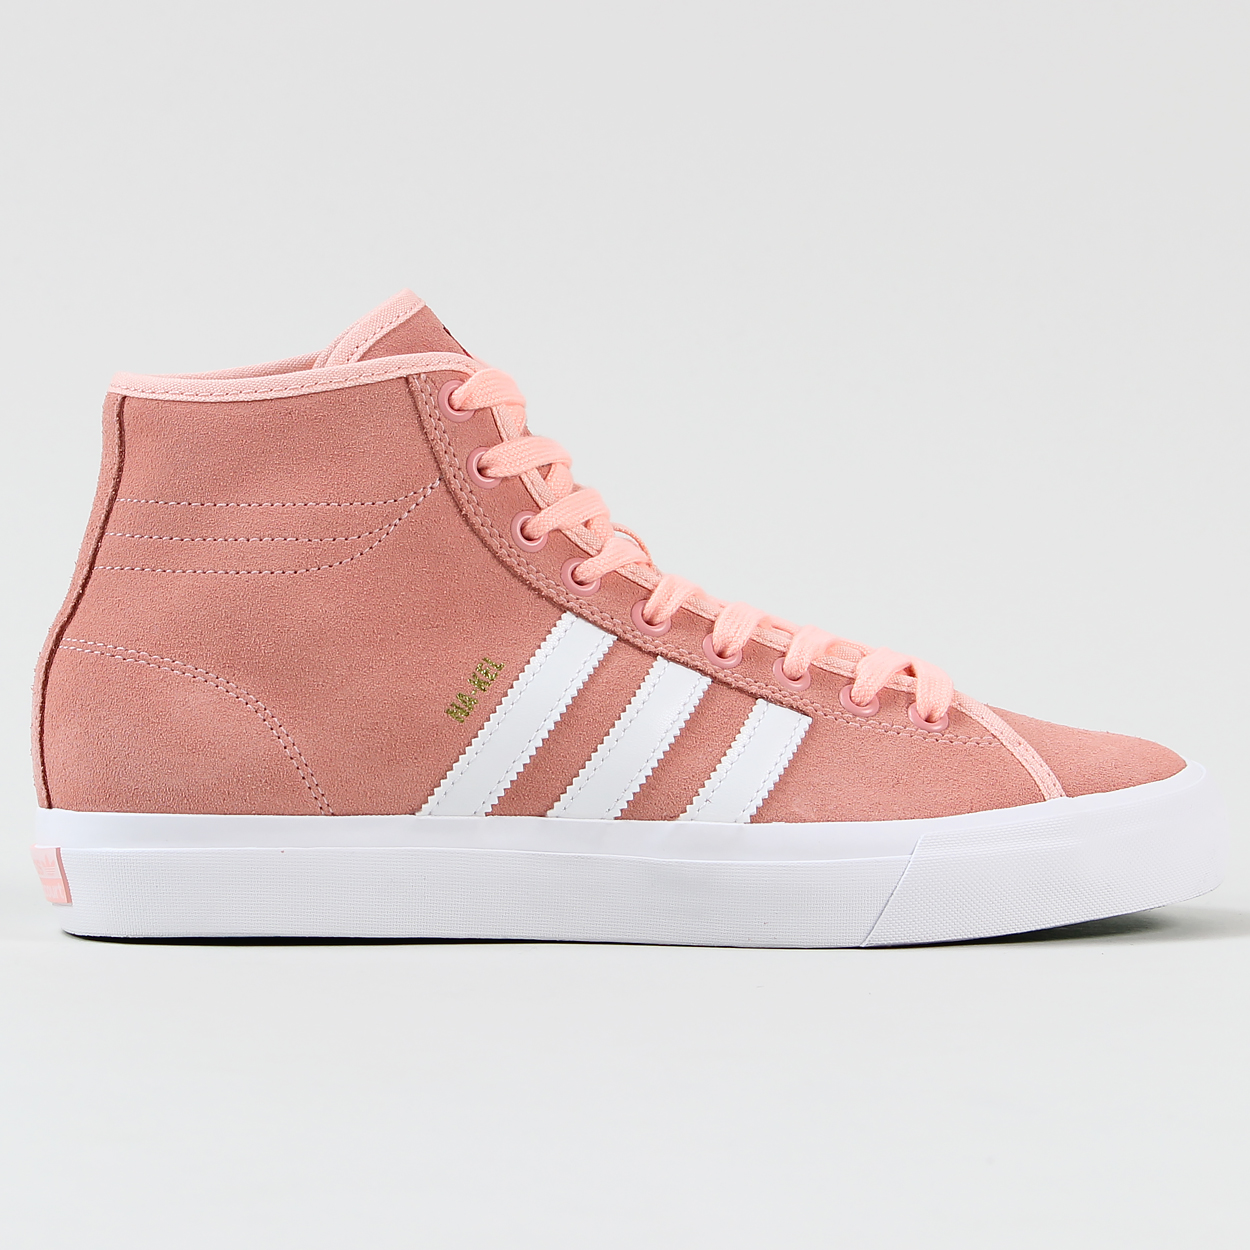 Adidas Matchcourt High Remix Nakel Smith Shoes Haze Coral White £52.47 dee3bffec